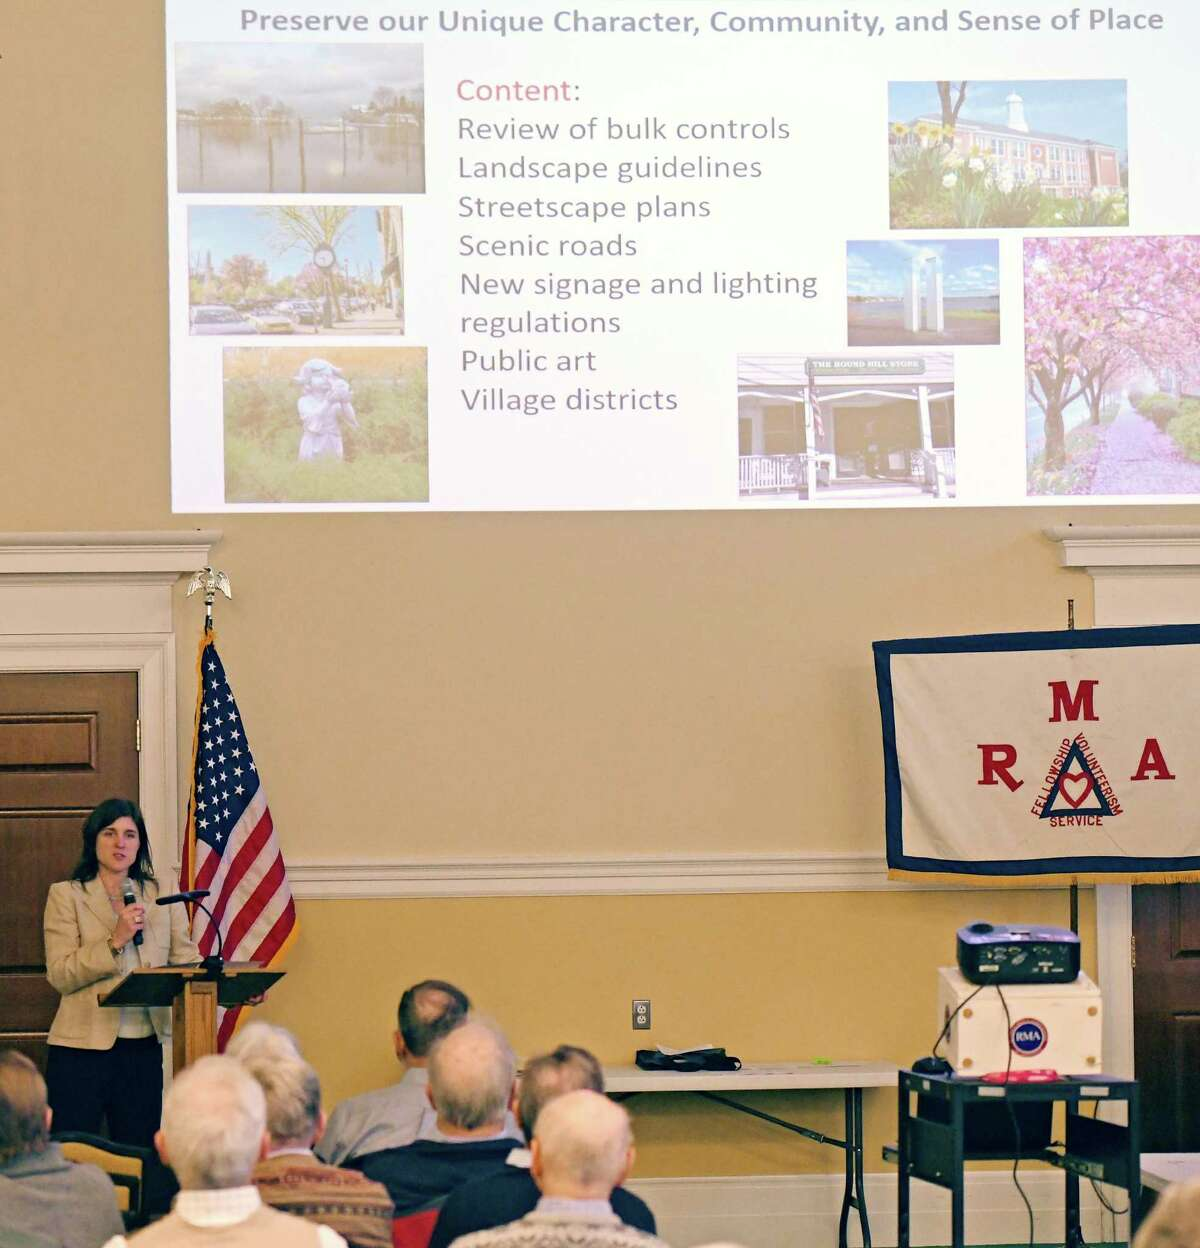 Greenwich Planning & Zoning Director Katie DeLuca speaks during the Retired Men's Association's weekly speaker series at First Presbyterian Church in Greenwich, Conn. Wednesday, Feb. 18, 2020. DeLuca spoke about implementing the town's Plan of Conservation and Development, which was approved last month.